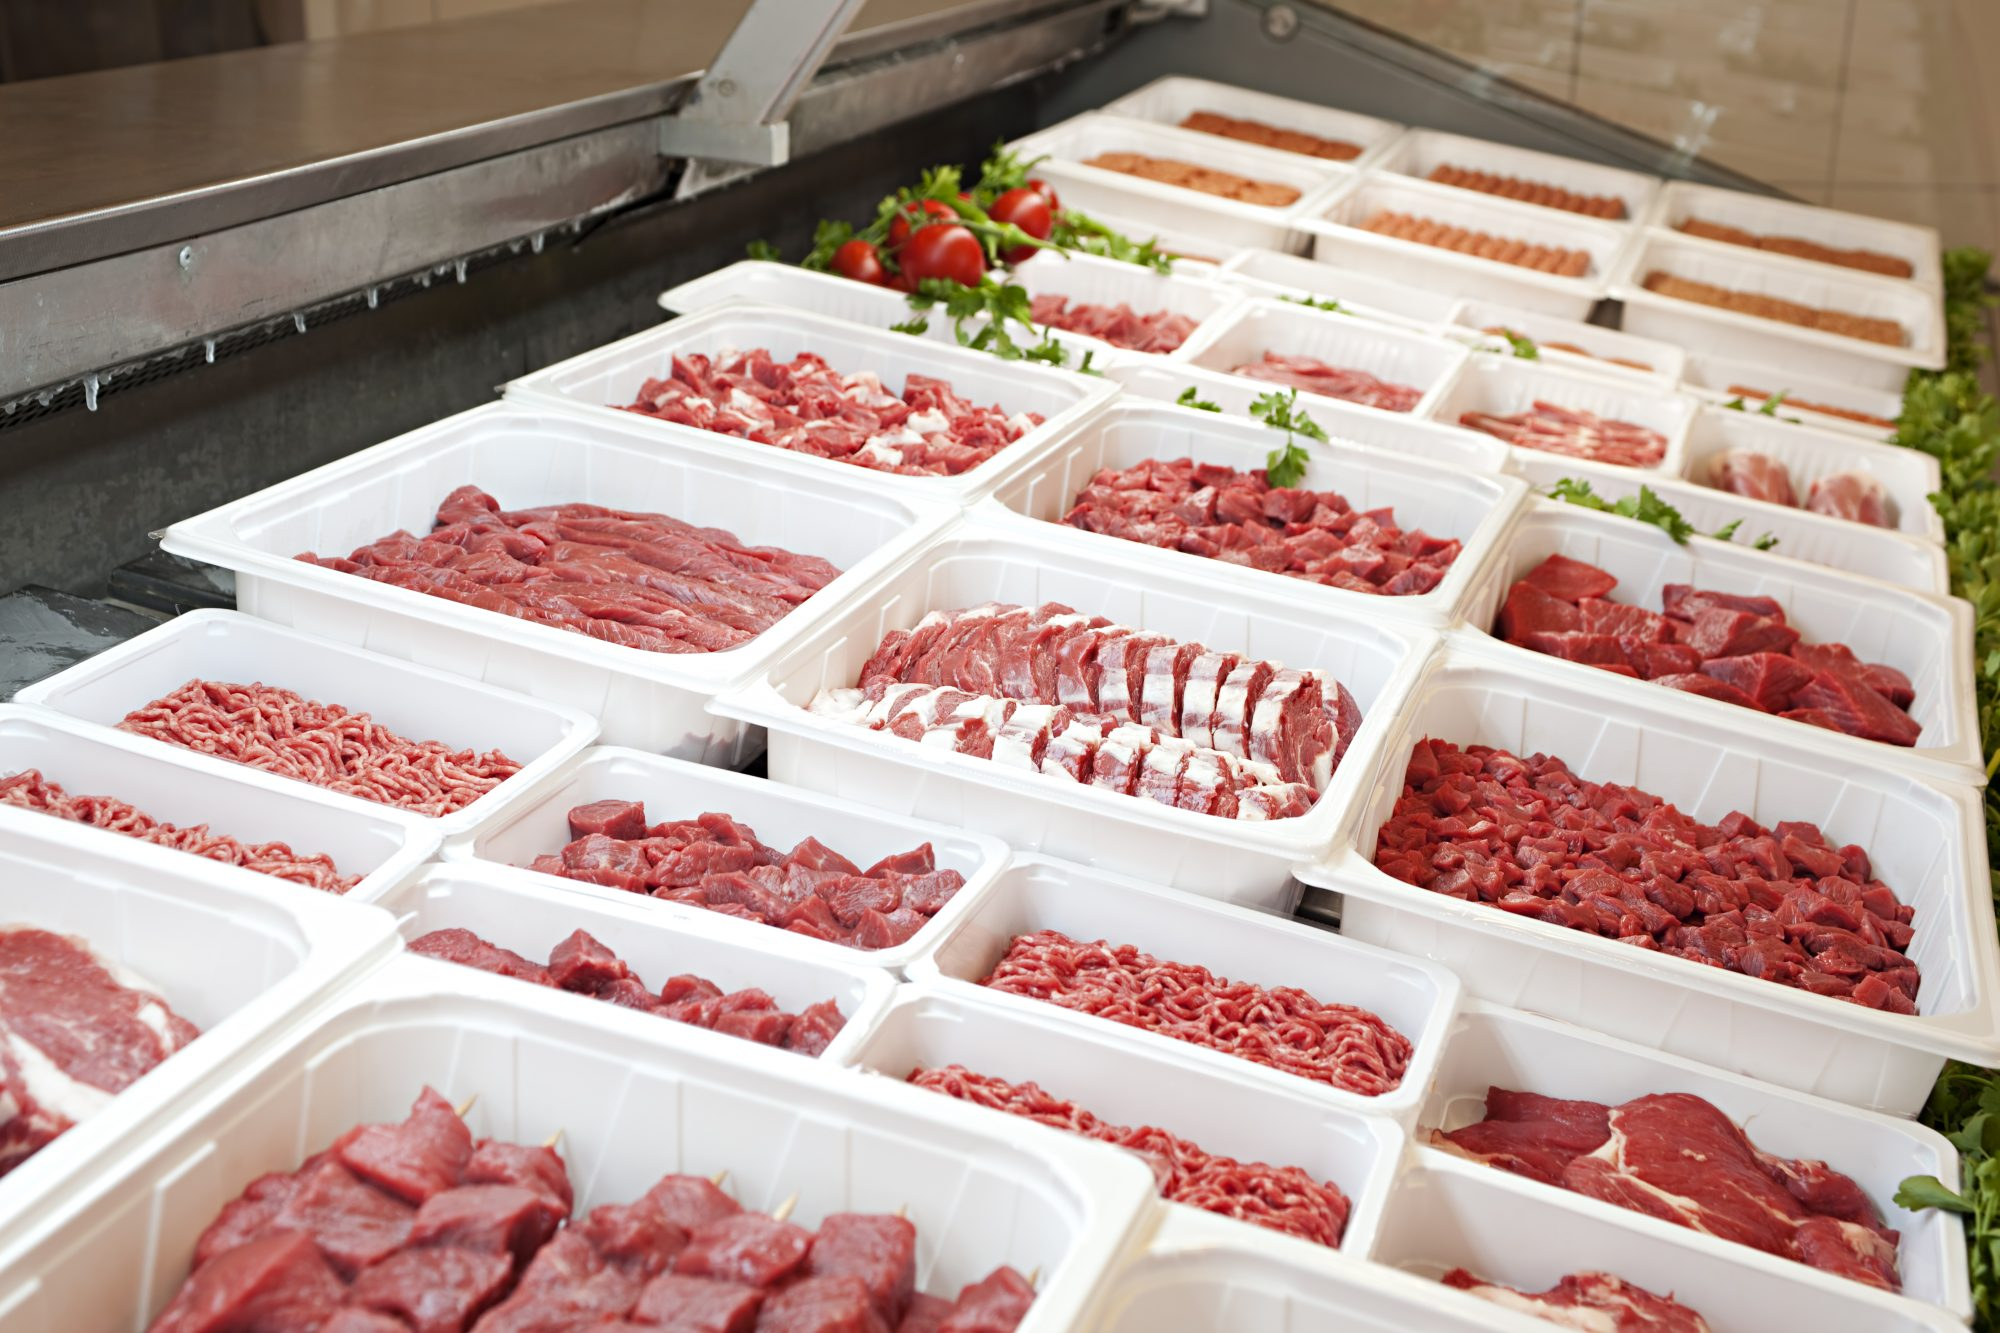 Butchers store and fresh meat: meat shortage